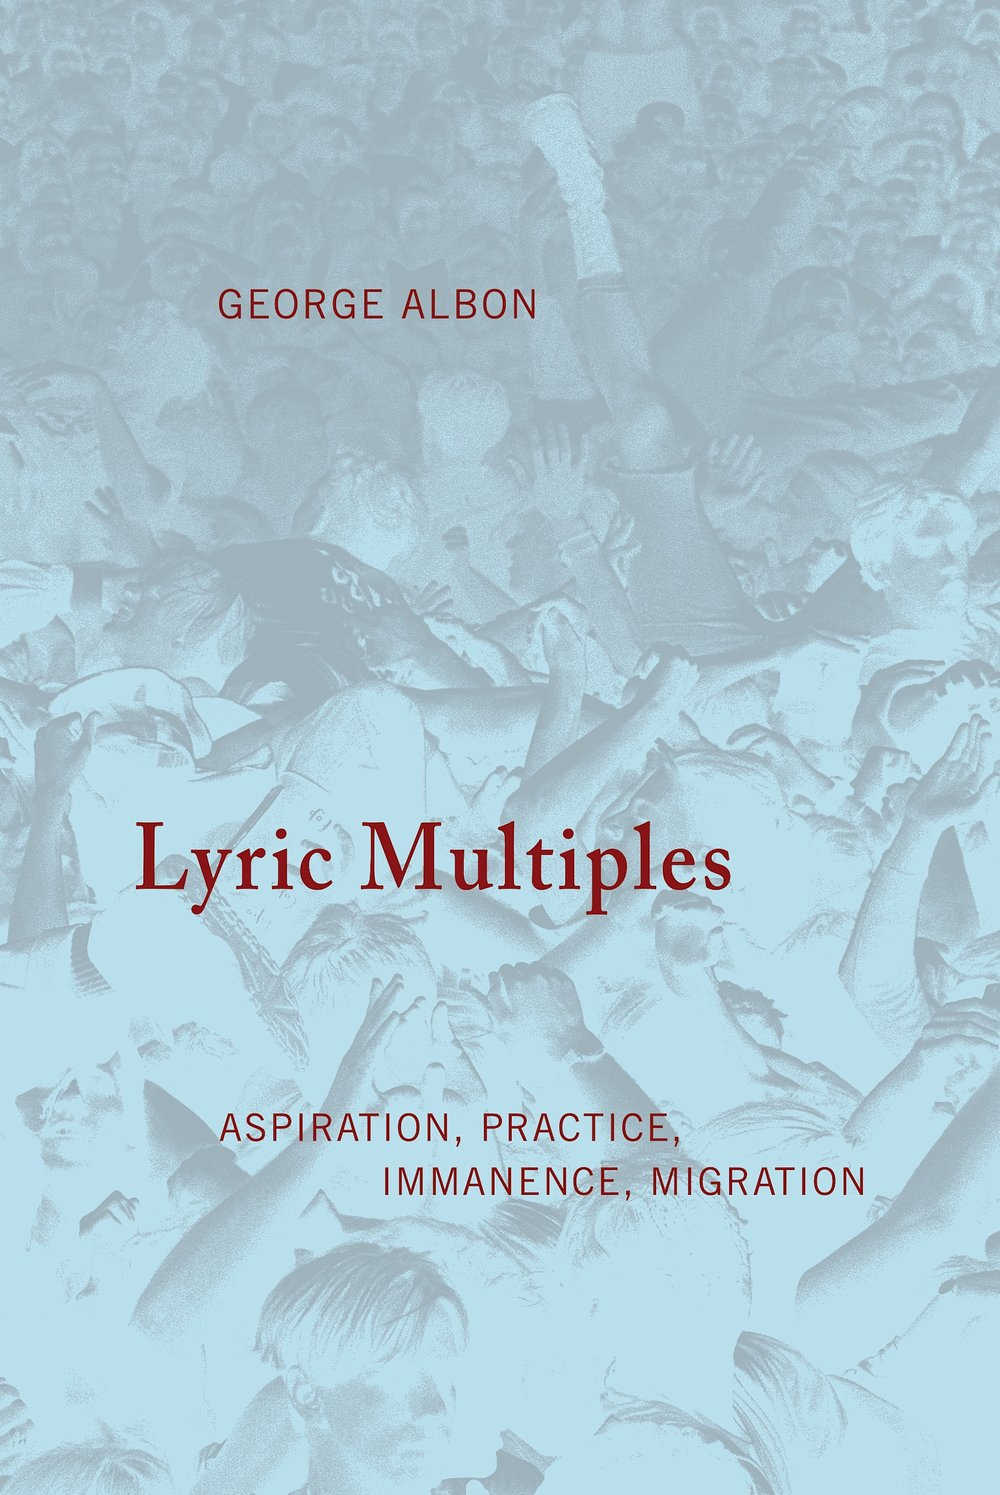 Albon_Lyric Multiples_front cover.jpg